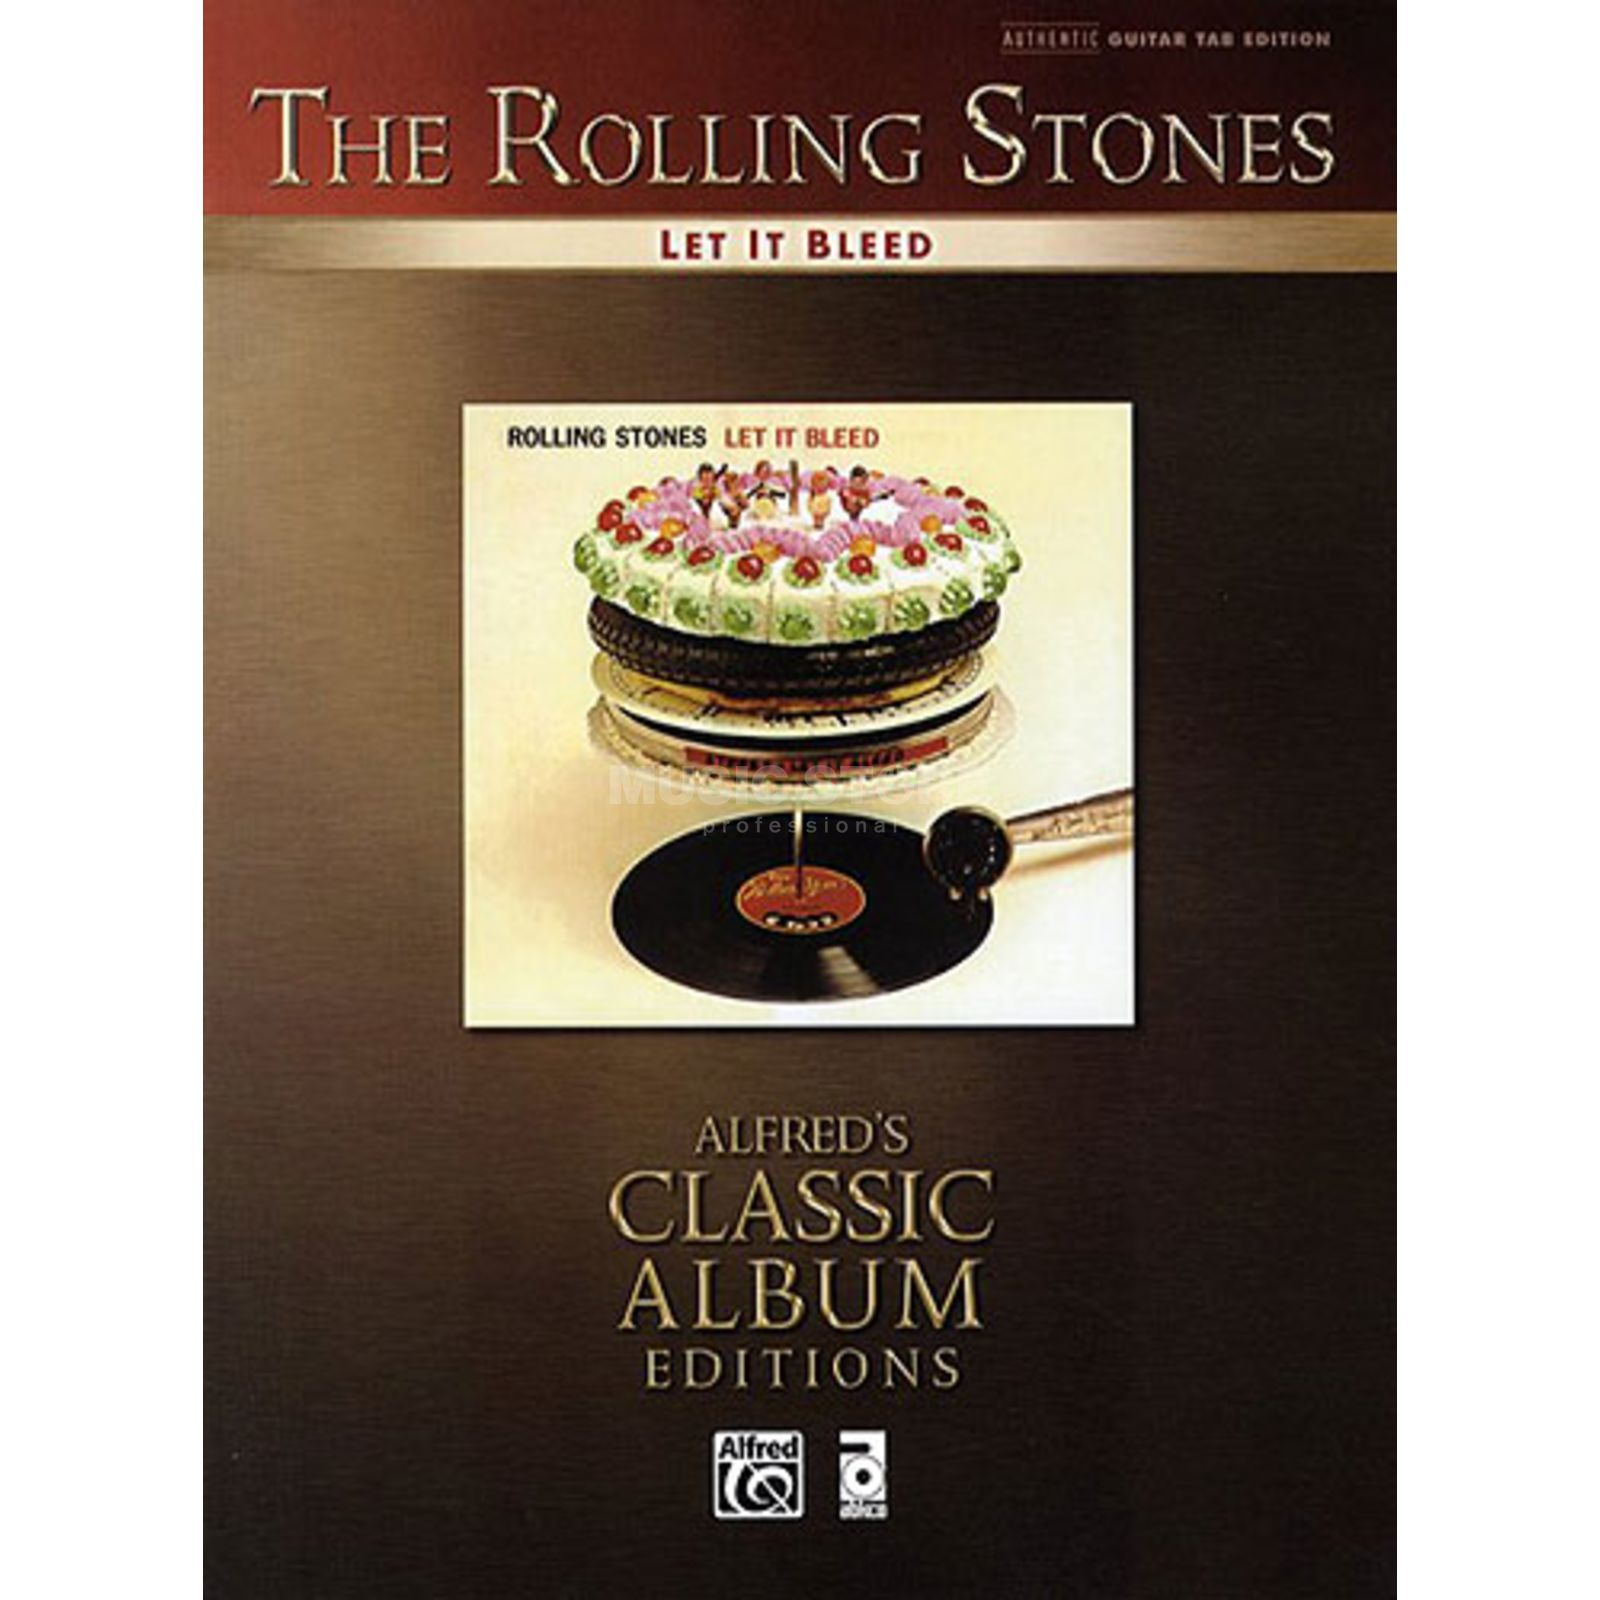 Alfred Music The Rolling Stones - Let it bleed TAB Produktbild